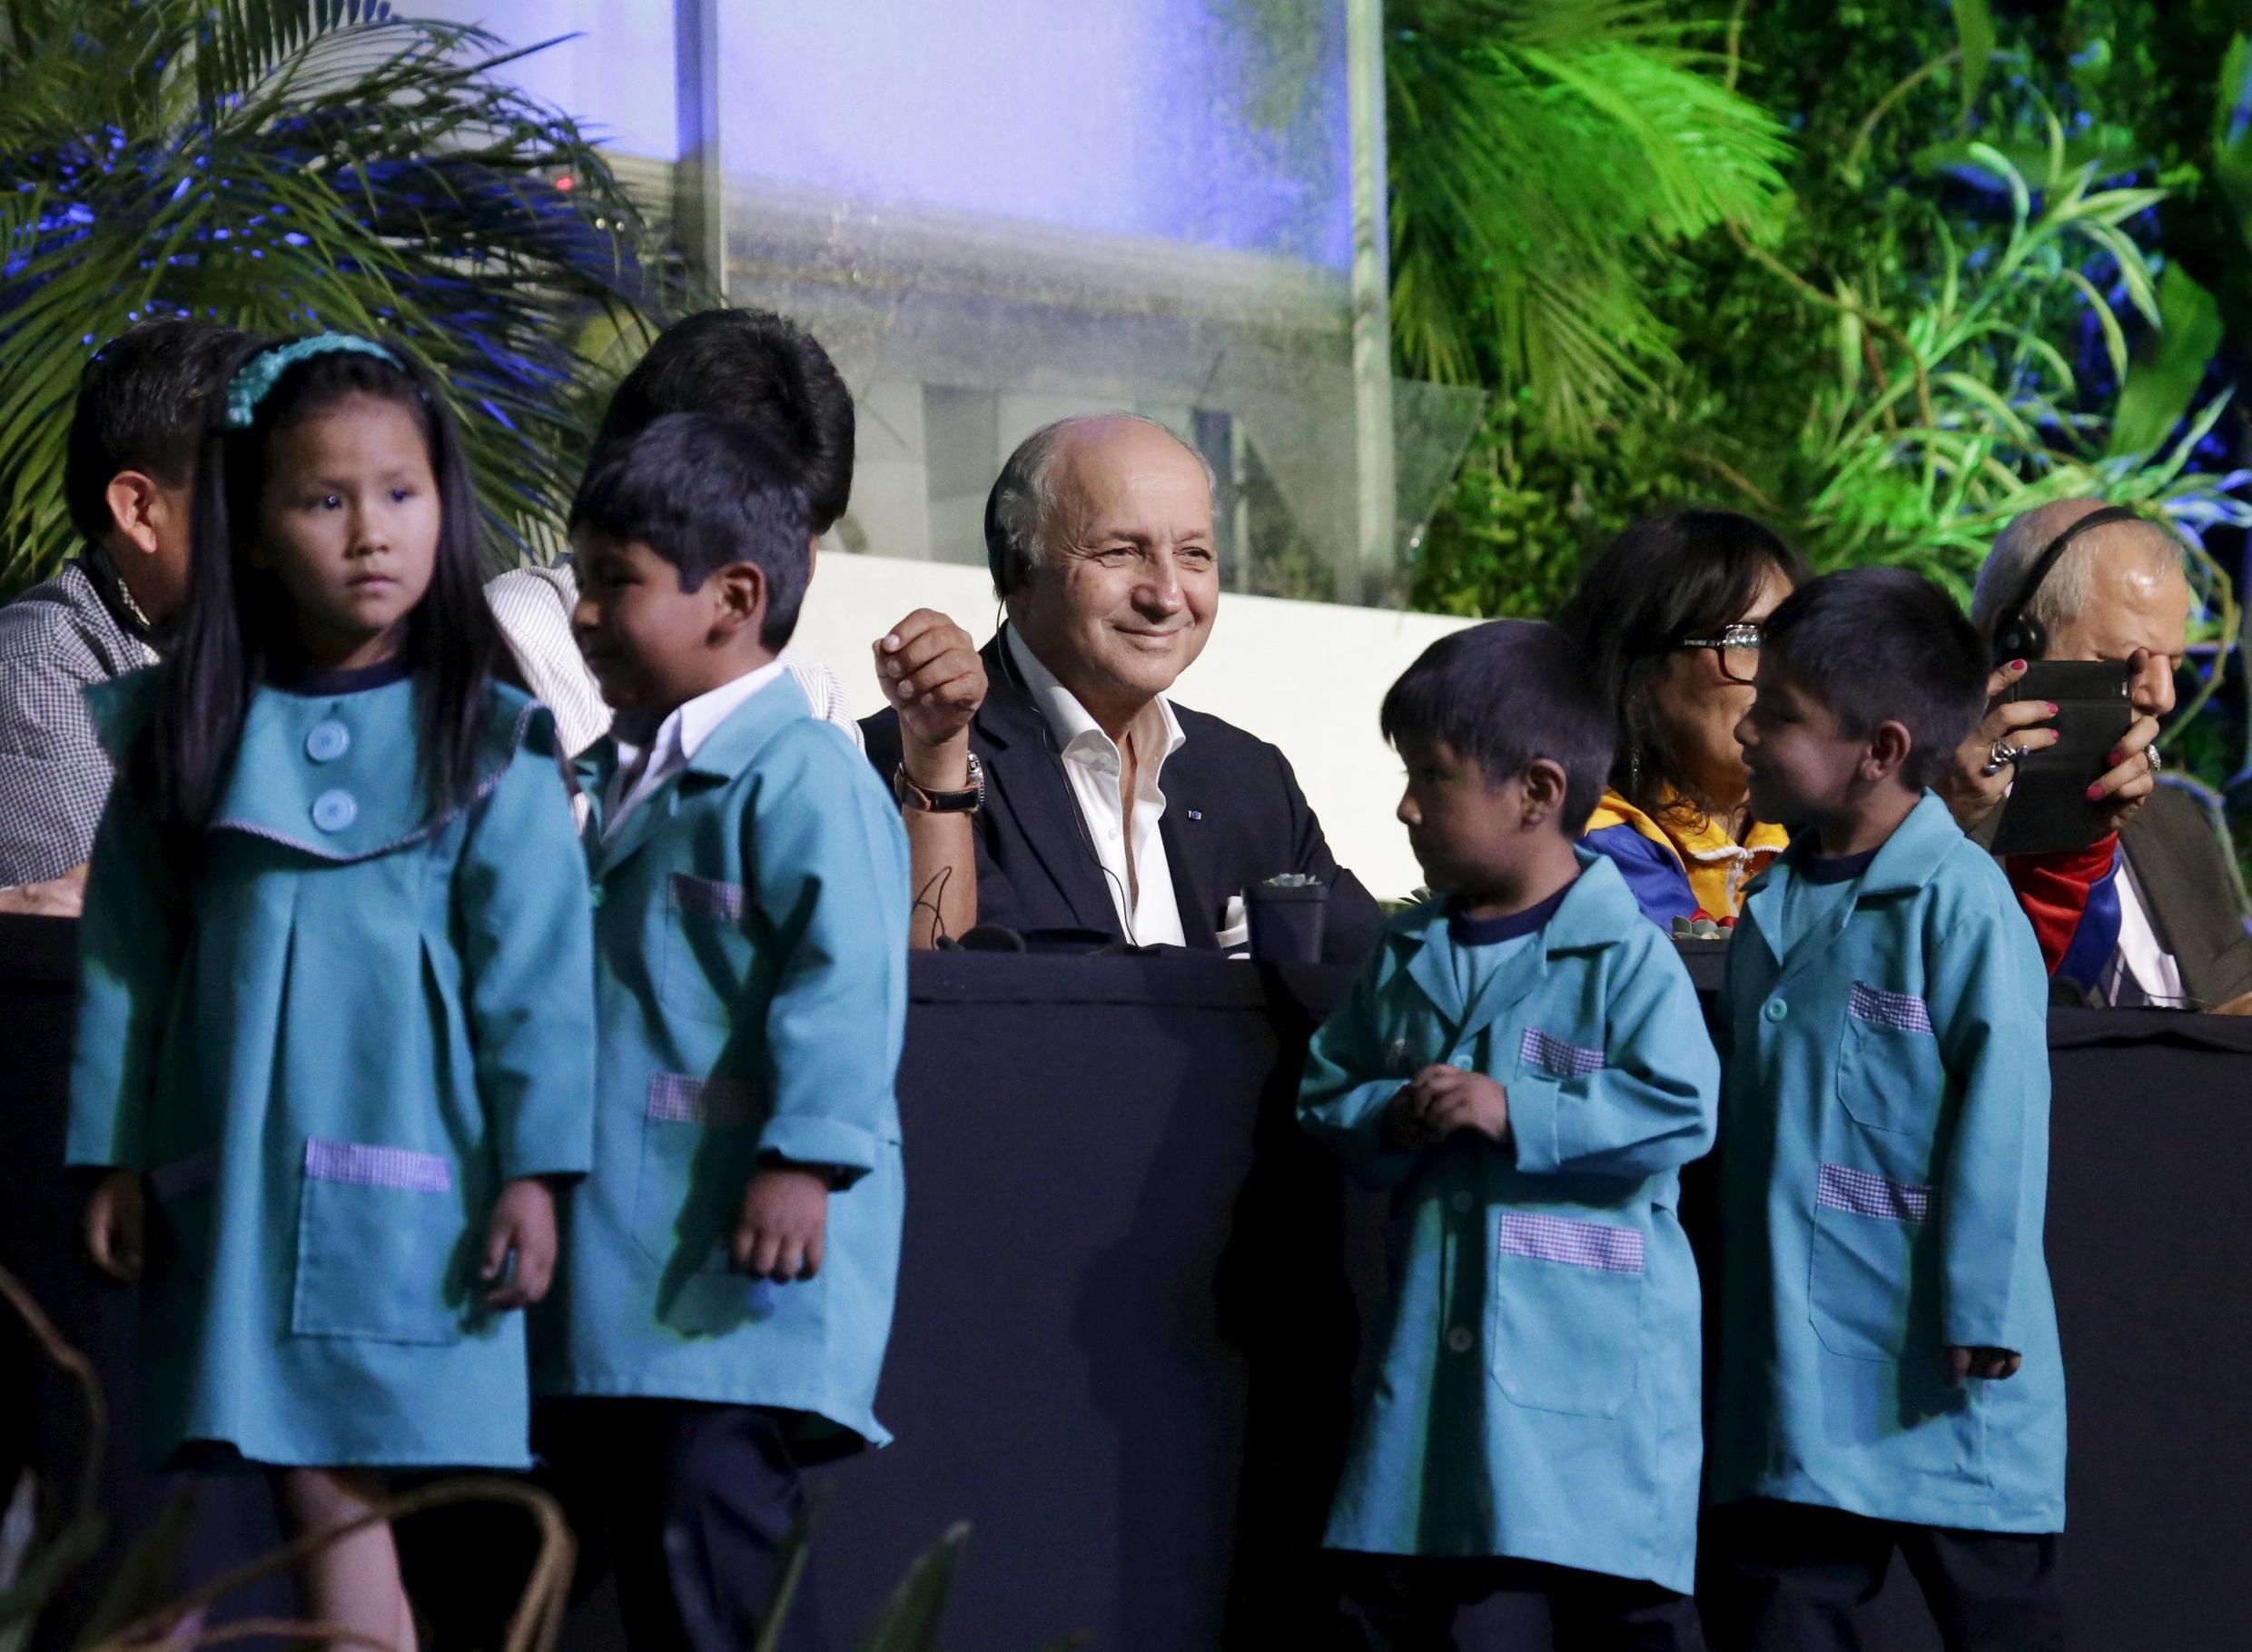 France's Foreign Minister Laurent Fabius is seen while school children participate at the inauguration of the World People's Conference on Climate Change, in Bolivia, October 10, 2015